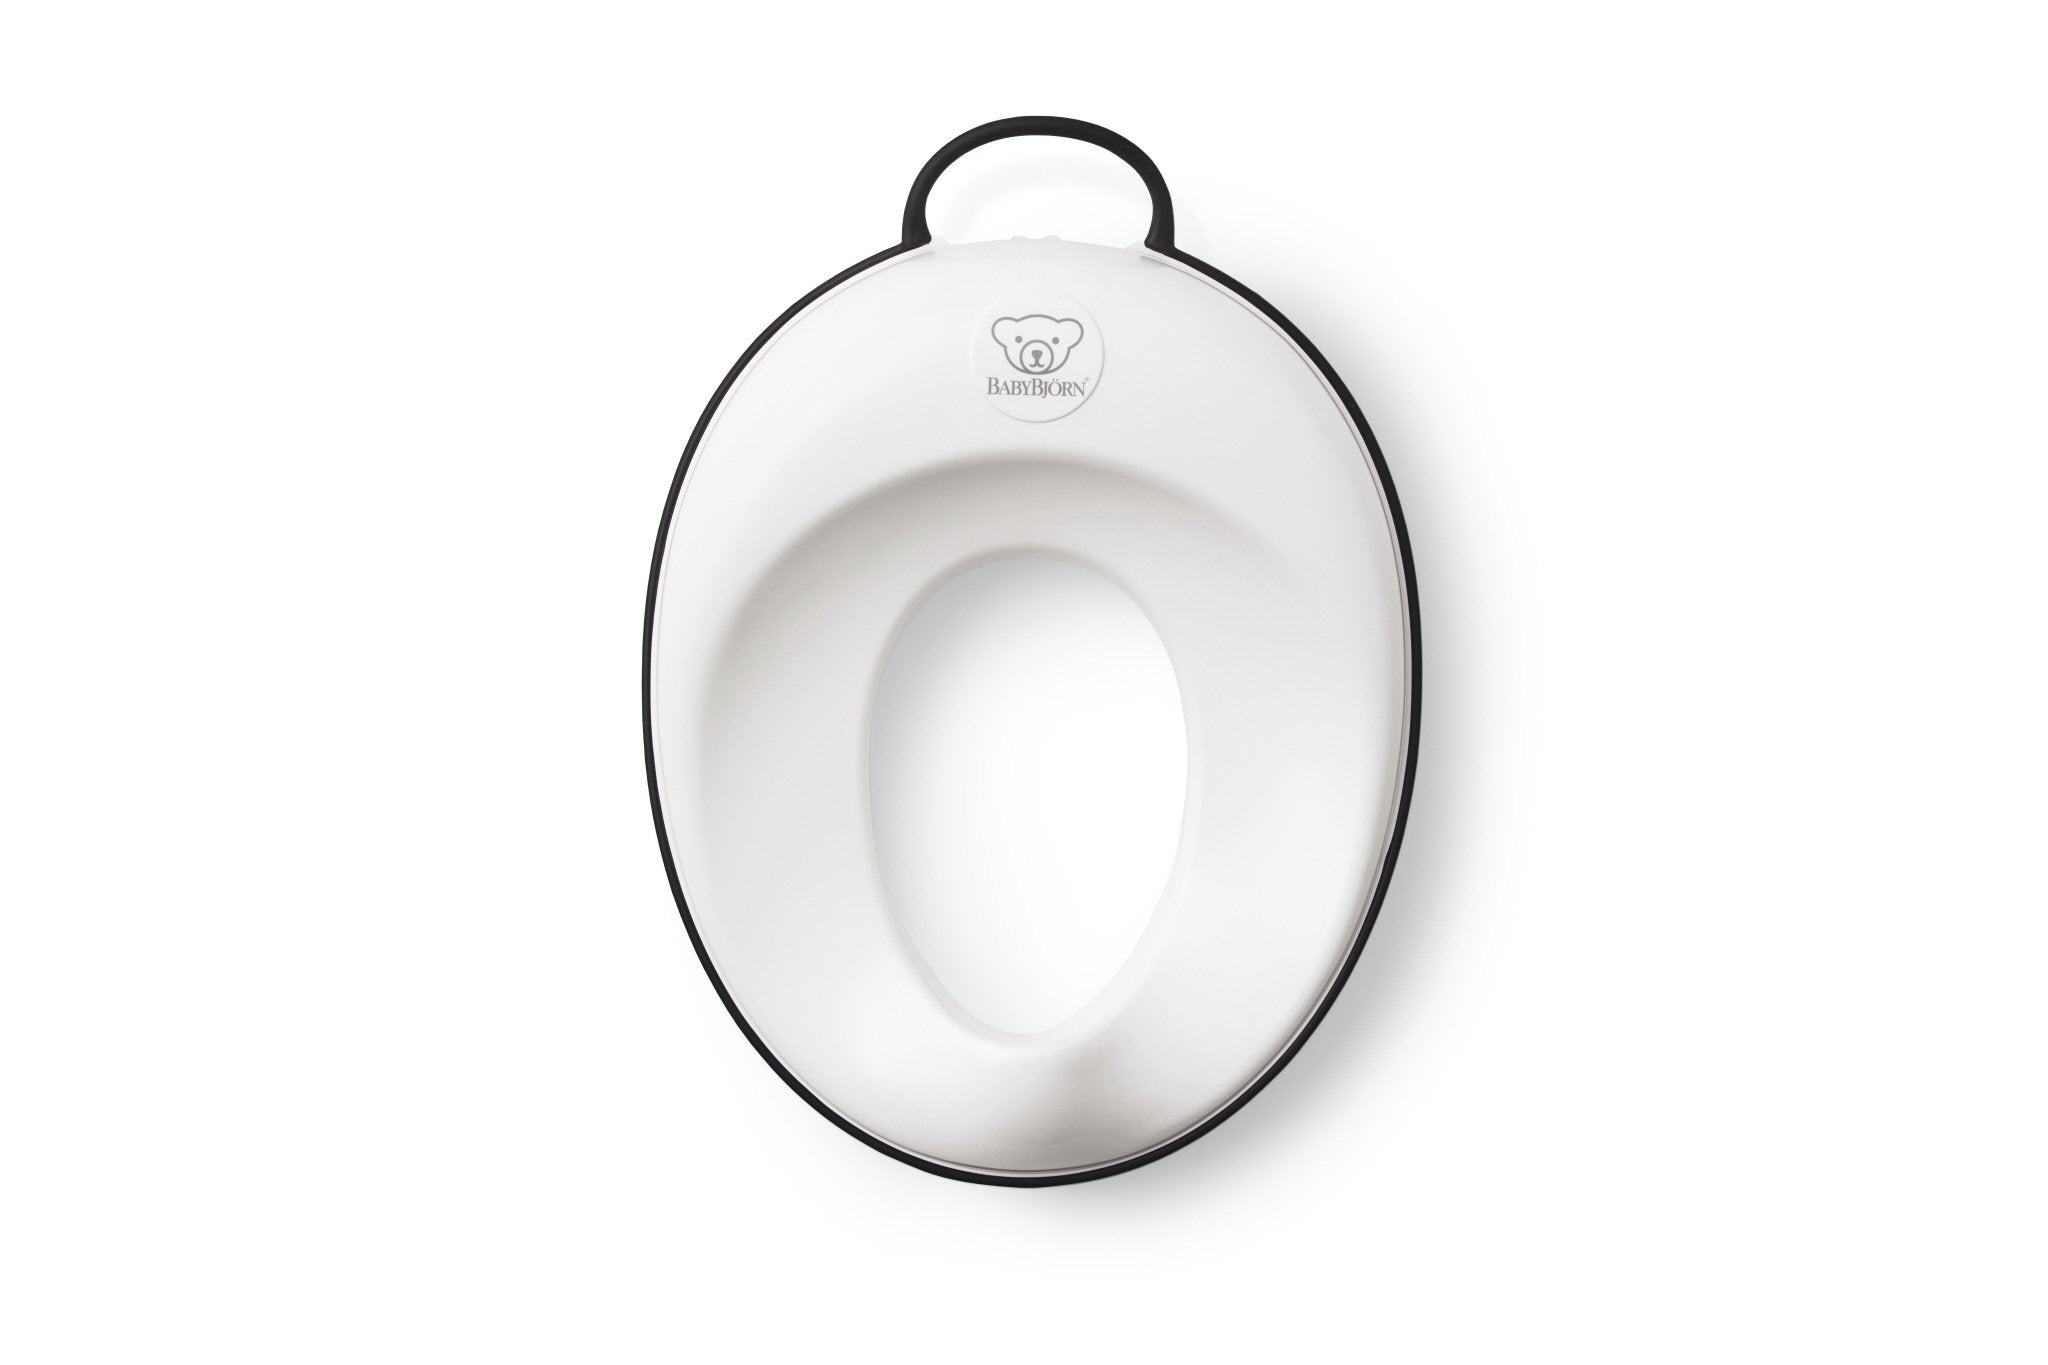 BabyBjorn Toilet Trainer White and Black